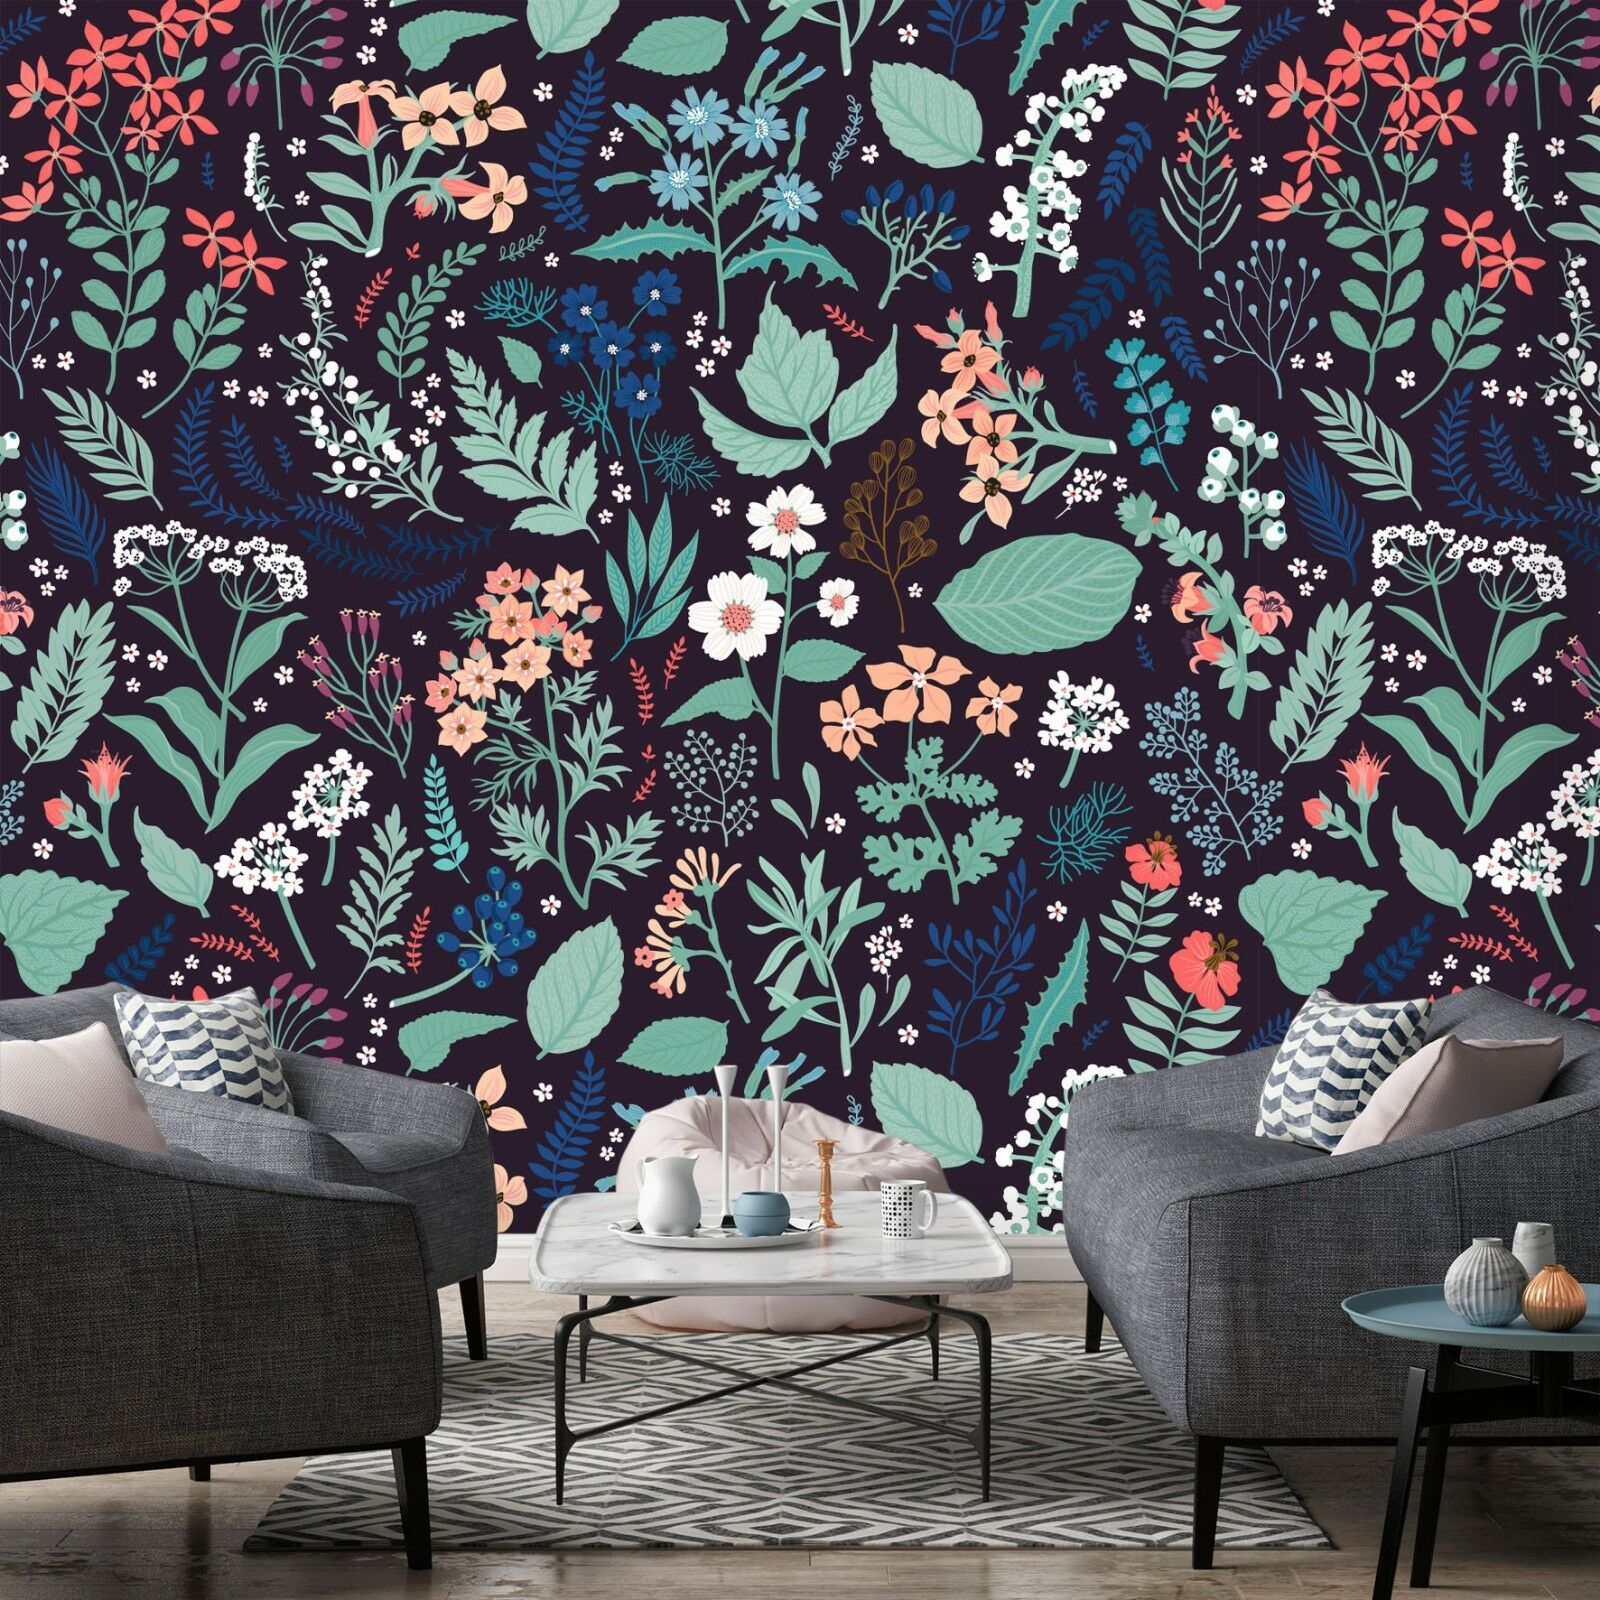 3D Leaf Pattern 87 Wall Paper Exclusive MXY Wallpaper Mural Decal Indoor Wall AJ